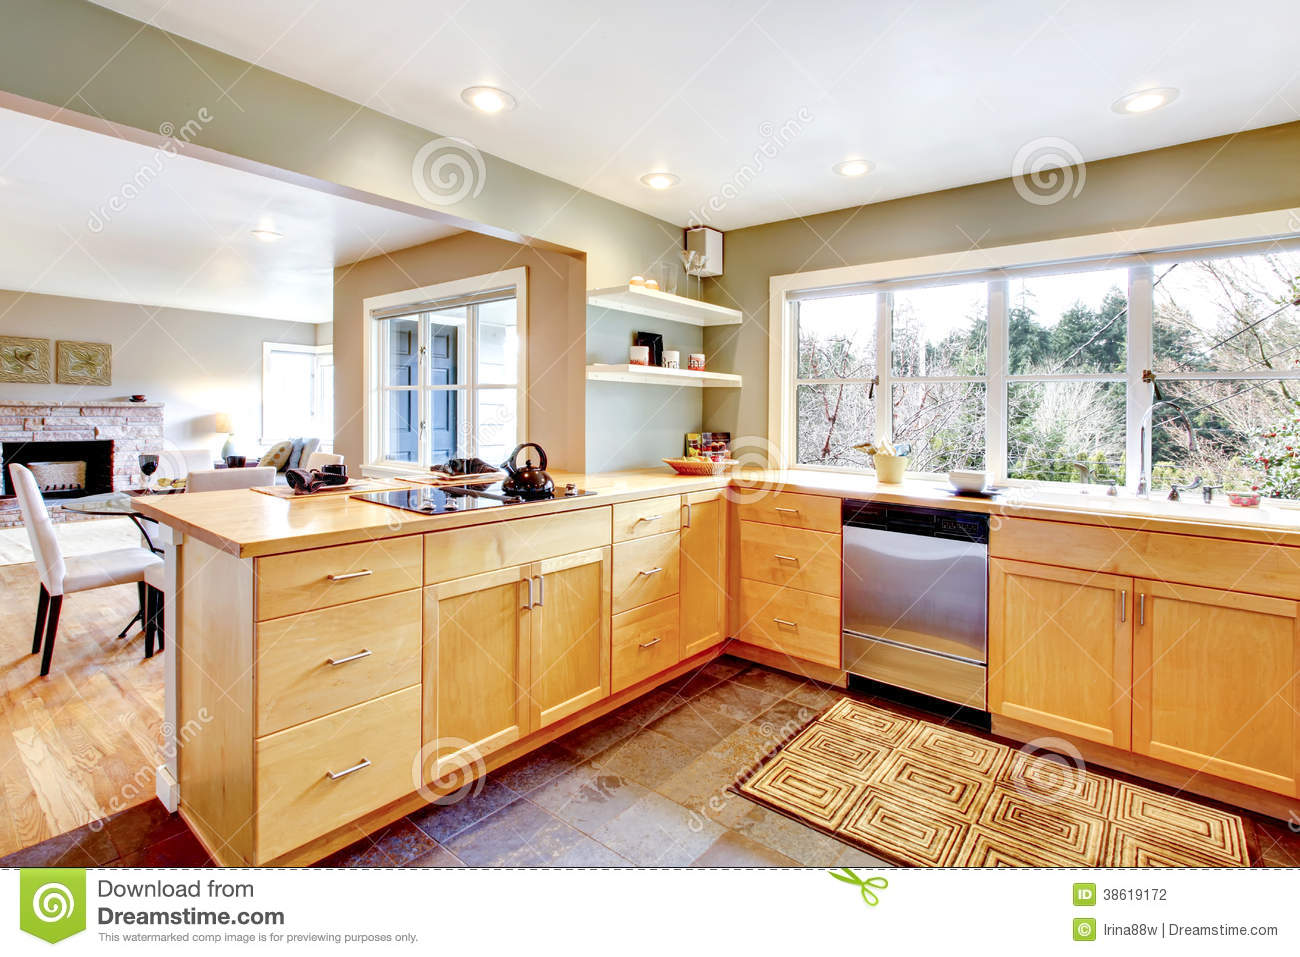 230 Maple Cabinets Photos Free Royalty Free Stock Photos From Dreamstime